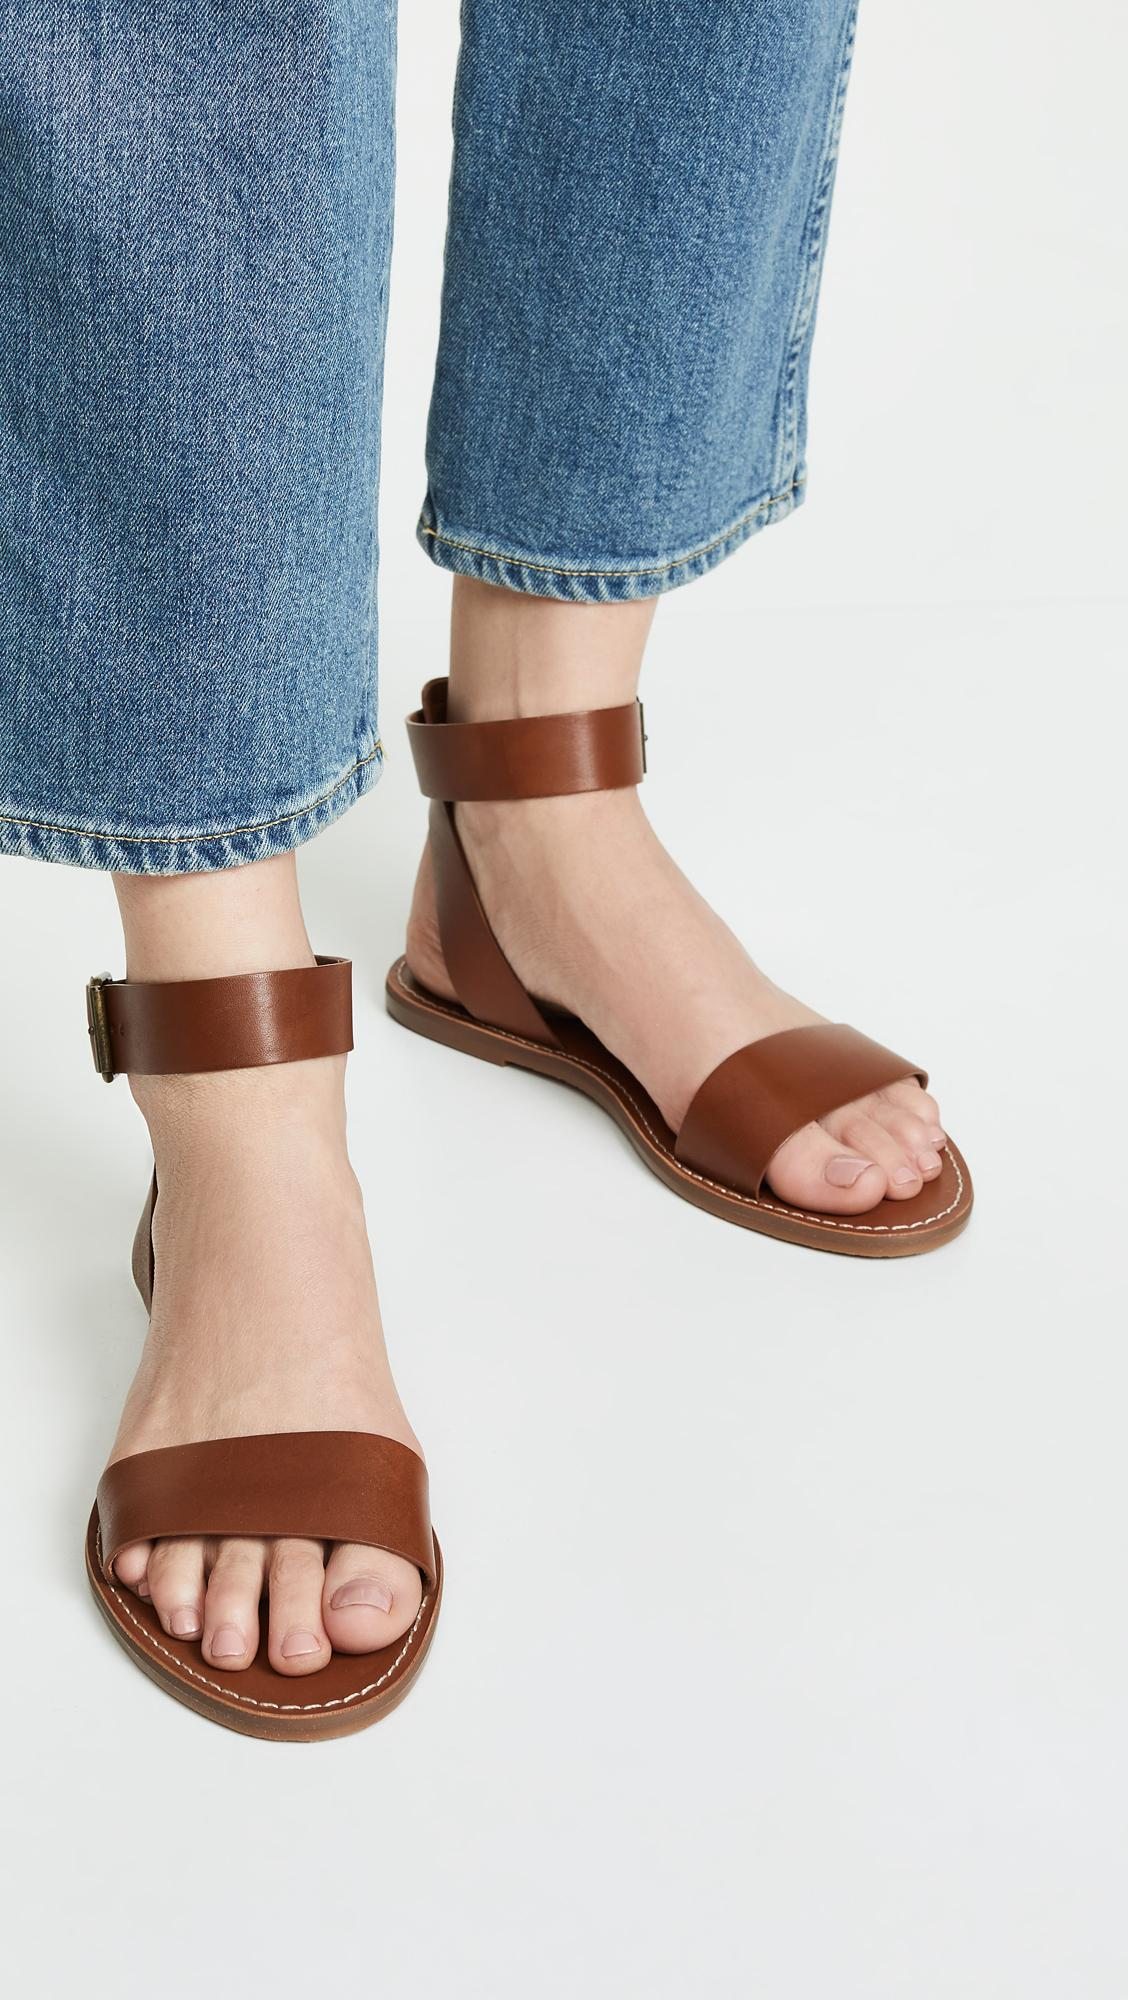 81e6572c12b8 Madewell - Brown The Boardwalk Ankle Strap Sandal - Lyst. View fullscreen